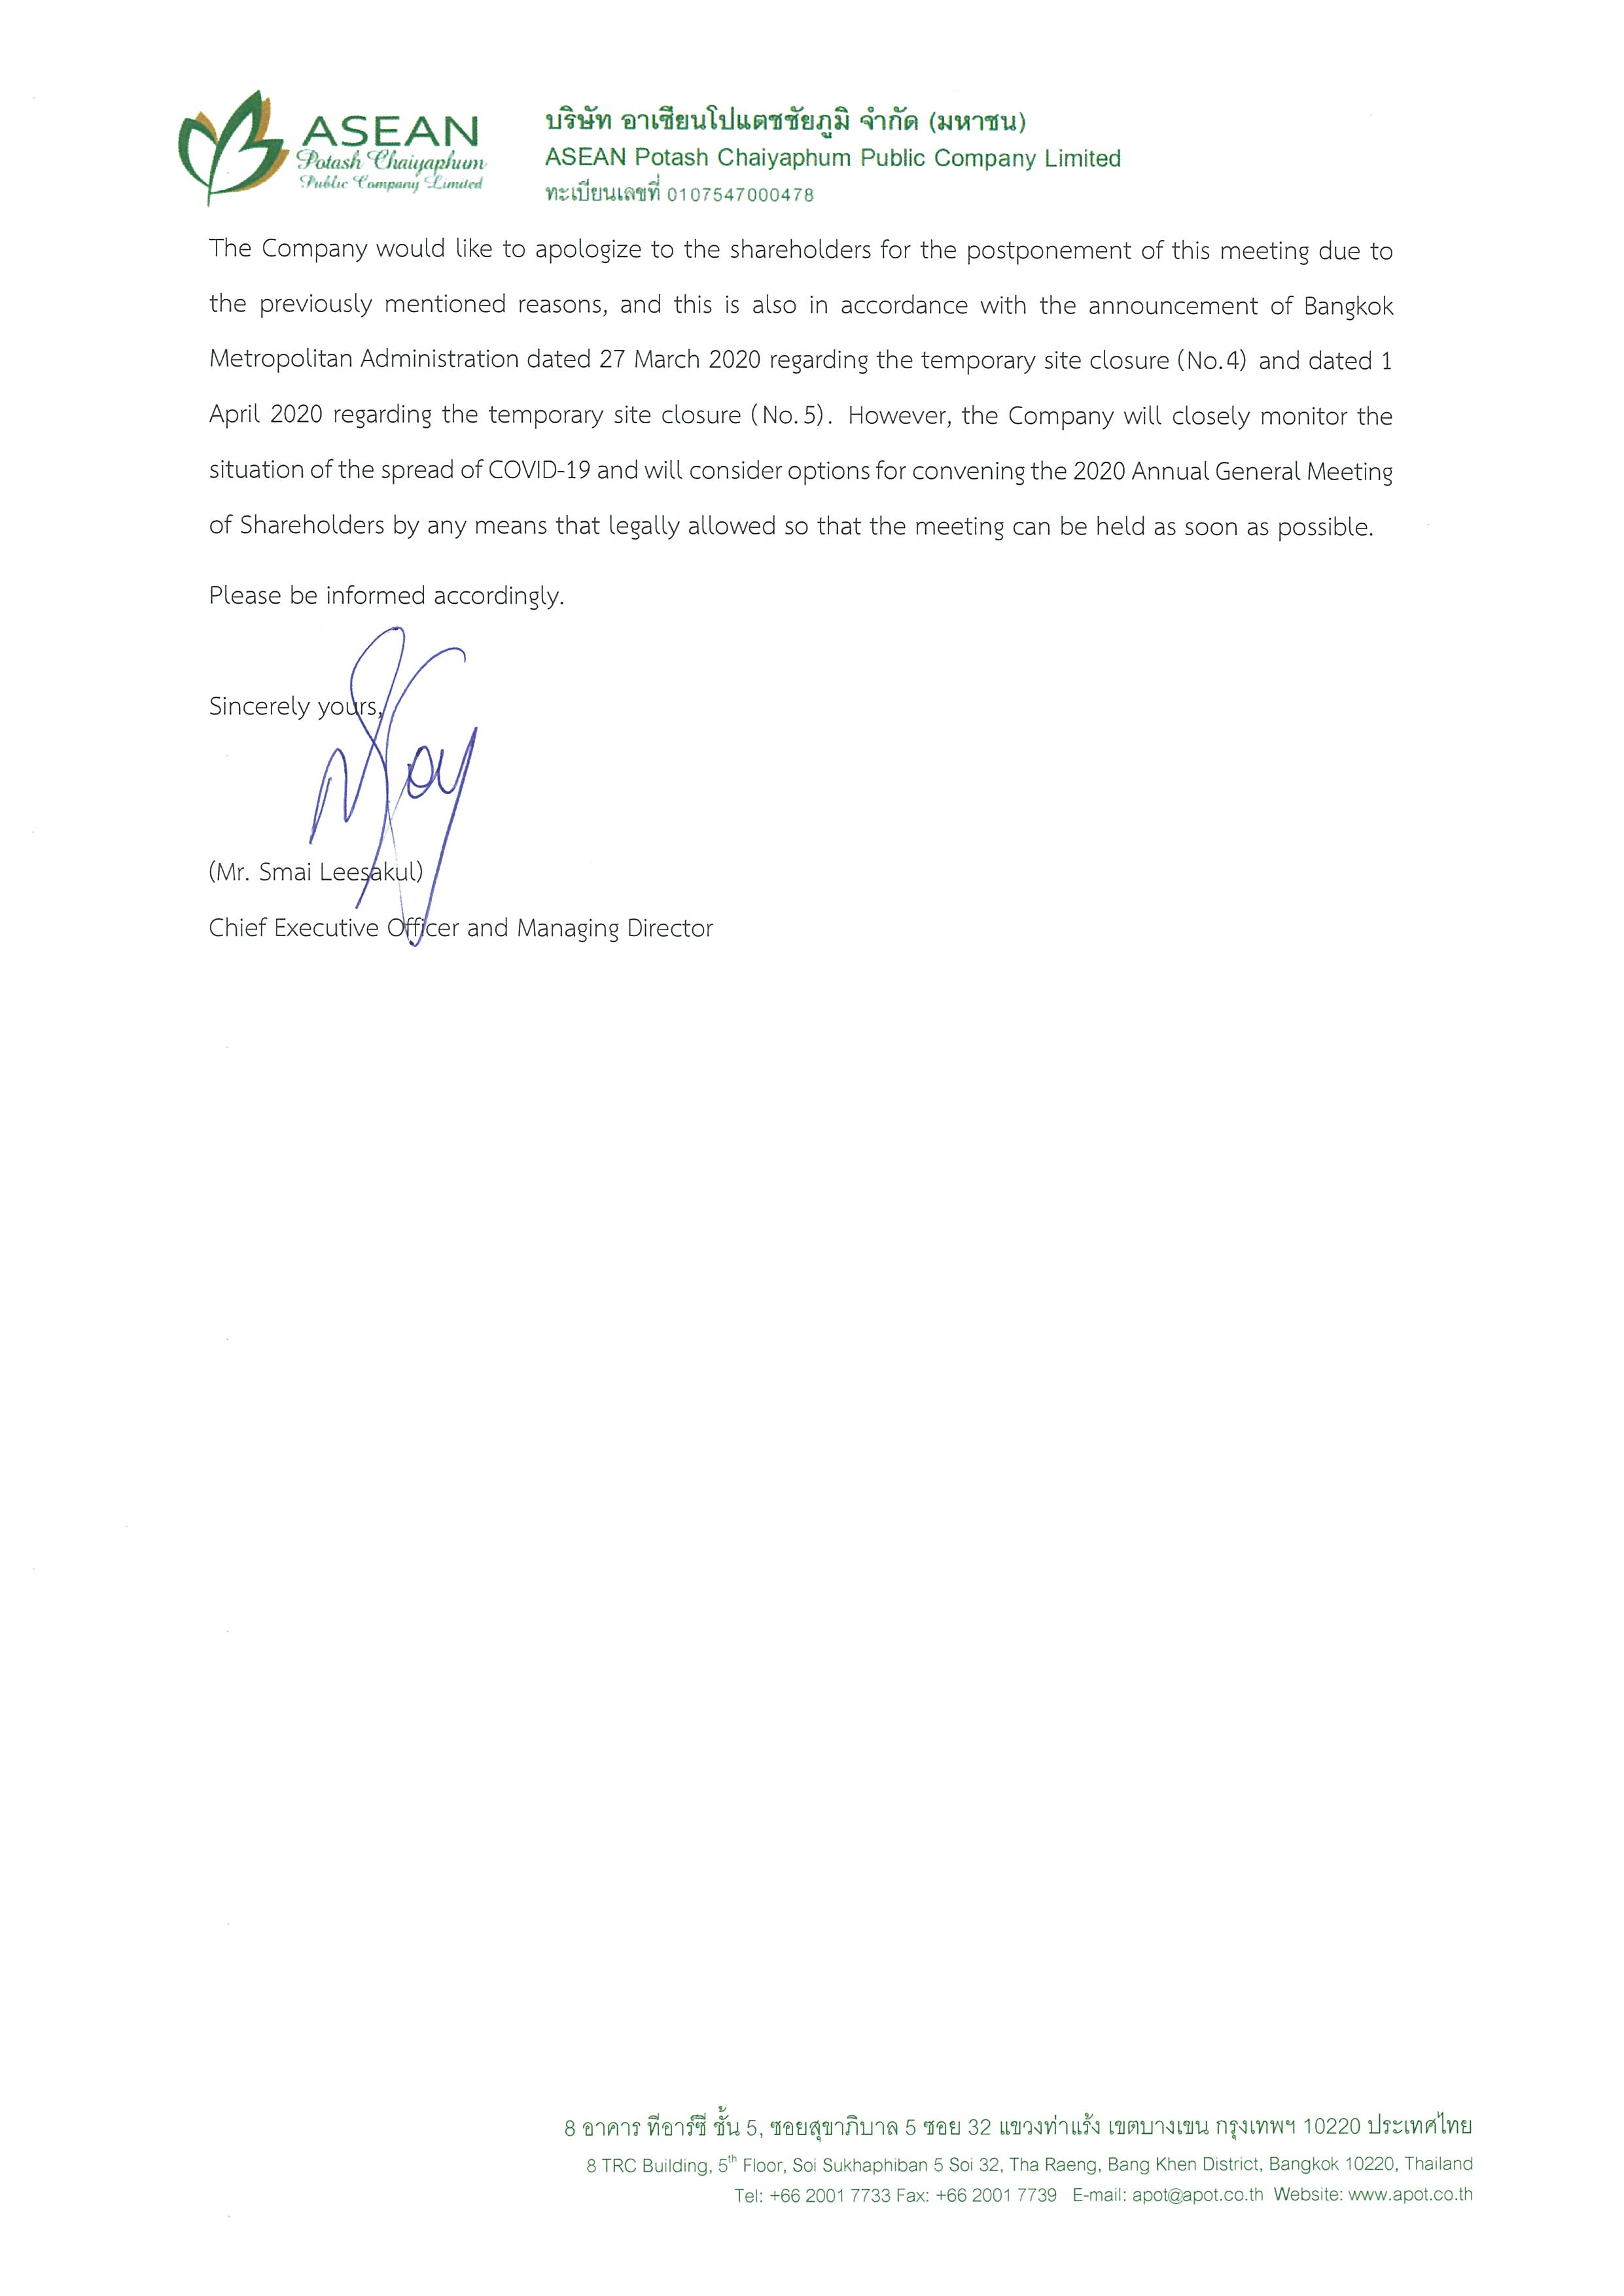 2The Resolotion of the Board of Director to postpone the 2020 AGM of Shareholder.jpg (336 KB)